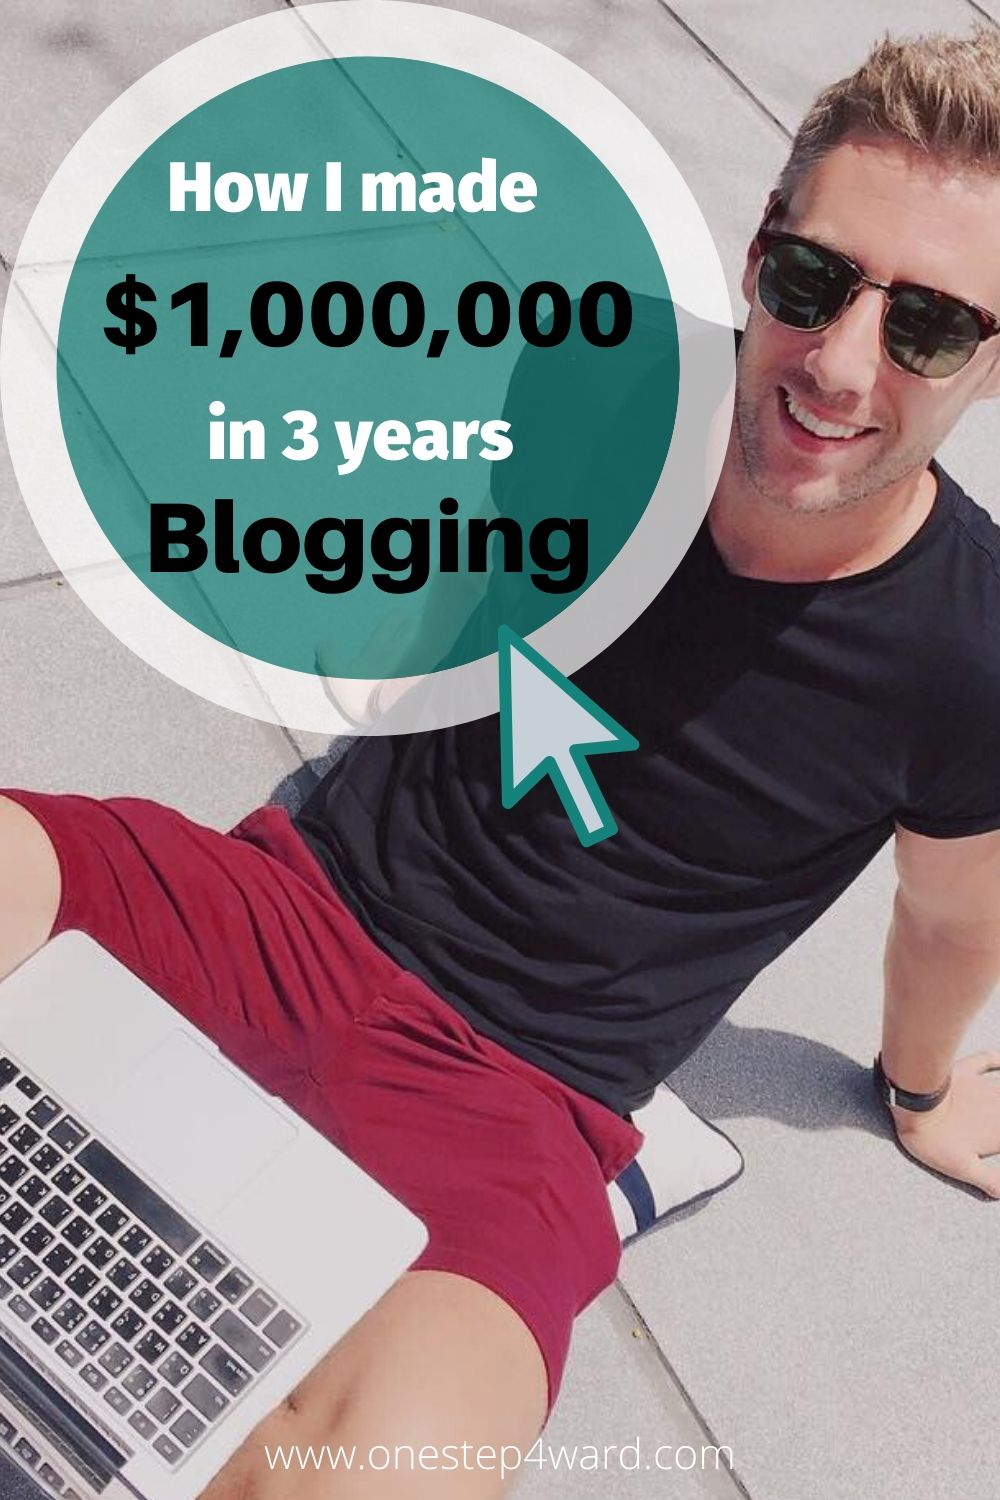 How I made $1,000,000 in 3 years blogging